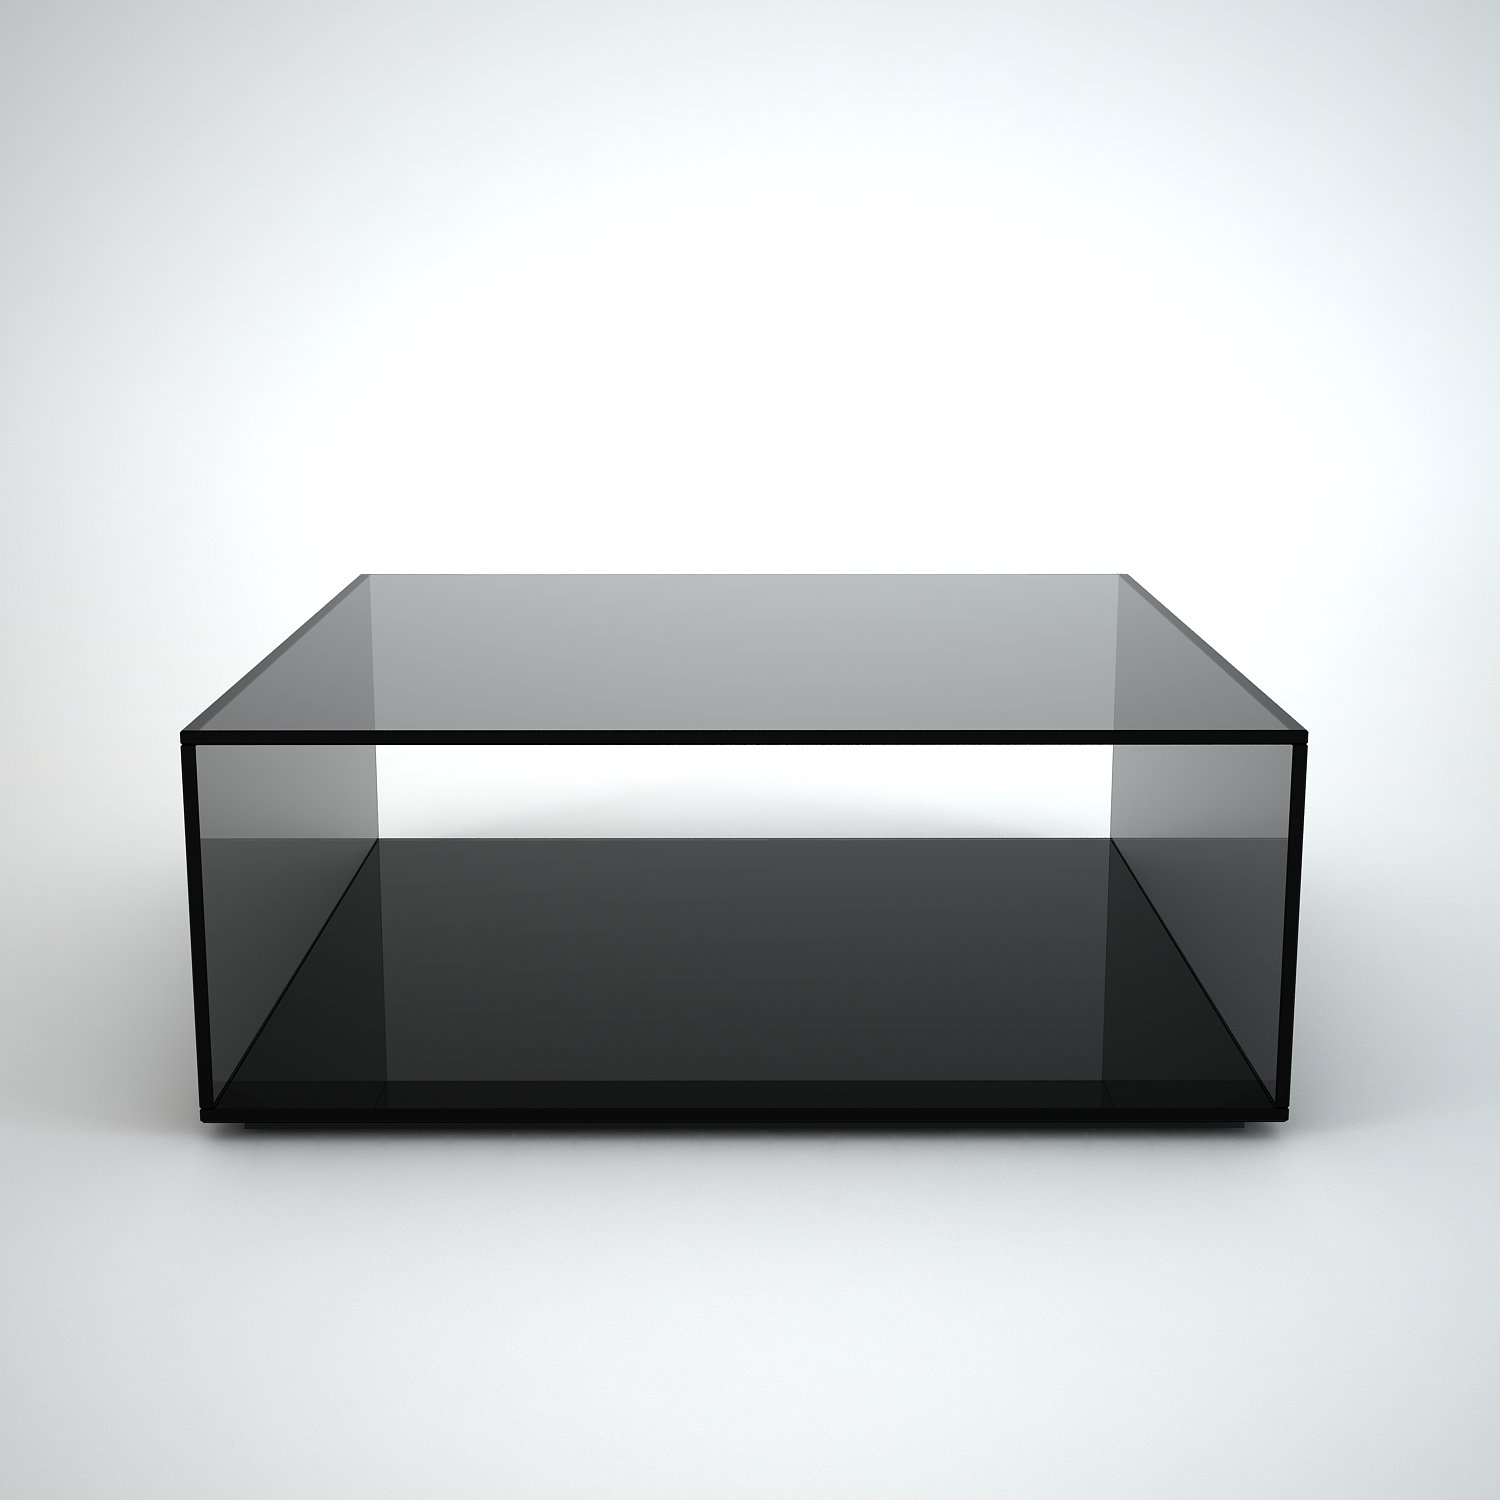 quebec square grey tint glass coffee table by klarity. Black Bedroom Furniture Sets. Home Design Ideas